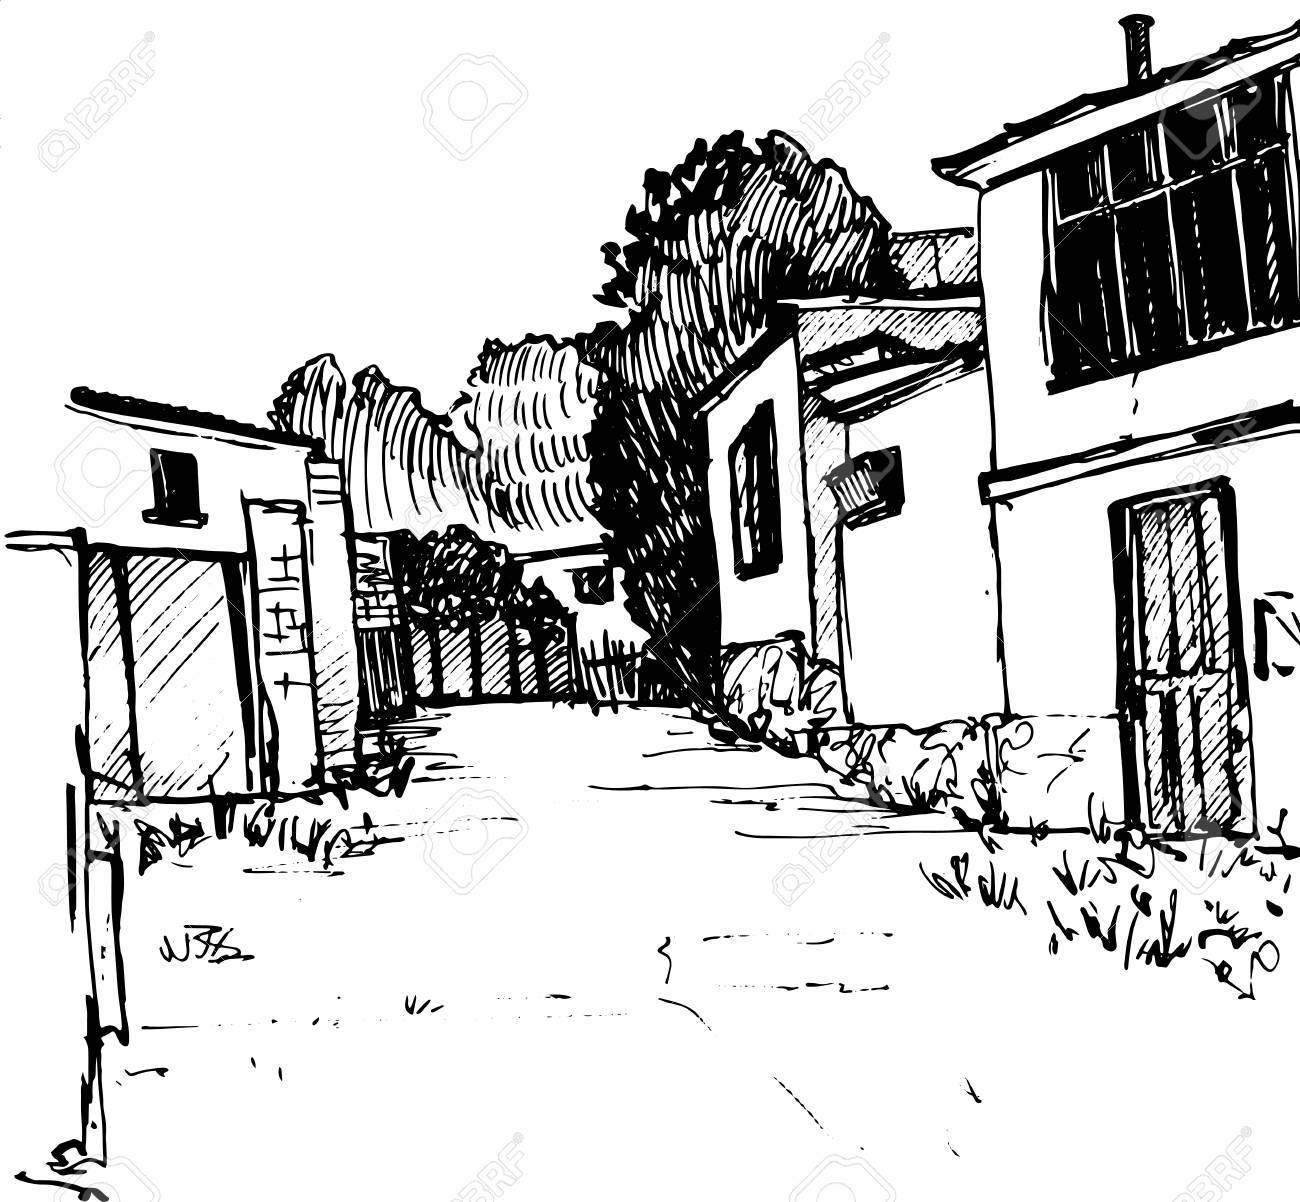 village street, urban sketch, road and buildings, hand drawn